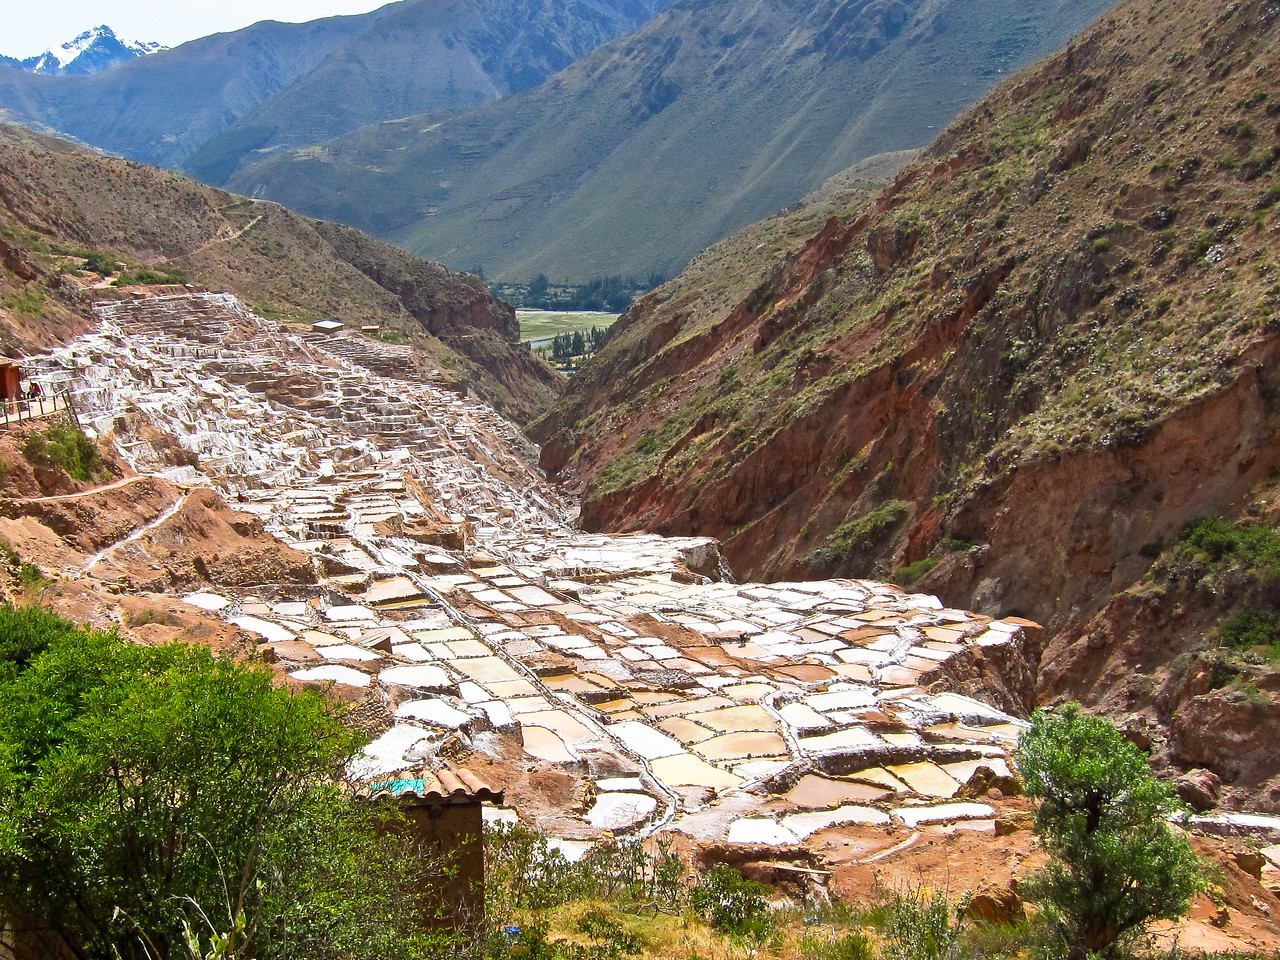 """Since pre-Inca times, salt has been obtained in Maras by evaporating salty water from a local subterranean stream. The highly salty water emerges at a spring, a natural outlet of the underground stream. The flow is directed into an intricate system of tiny channels constructed so that the water runs gradually down onto the several hundred ancient terraced ponds. Almost all the ponds are less than four meters square in area, and none exceeds thirty centimeters in depth. All are necessarily shaped into polygons with the flow of water carefully controlled and monitored by the """"farmers"""""""